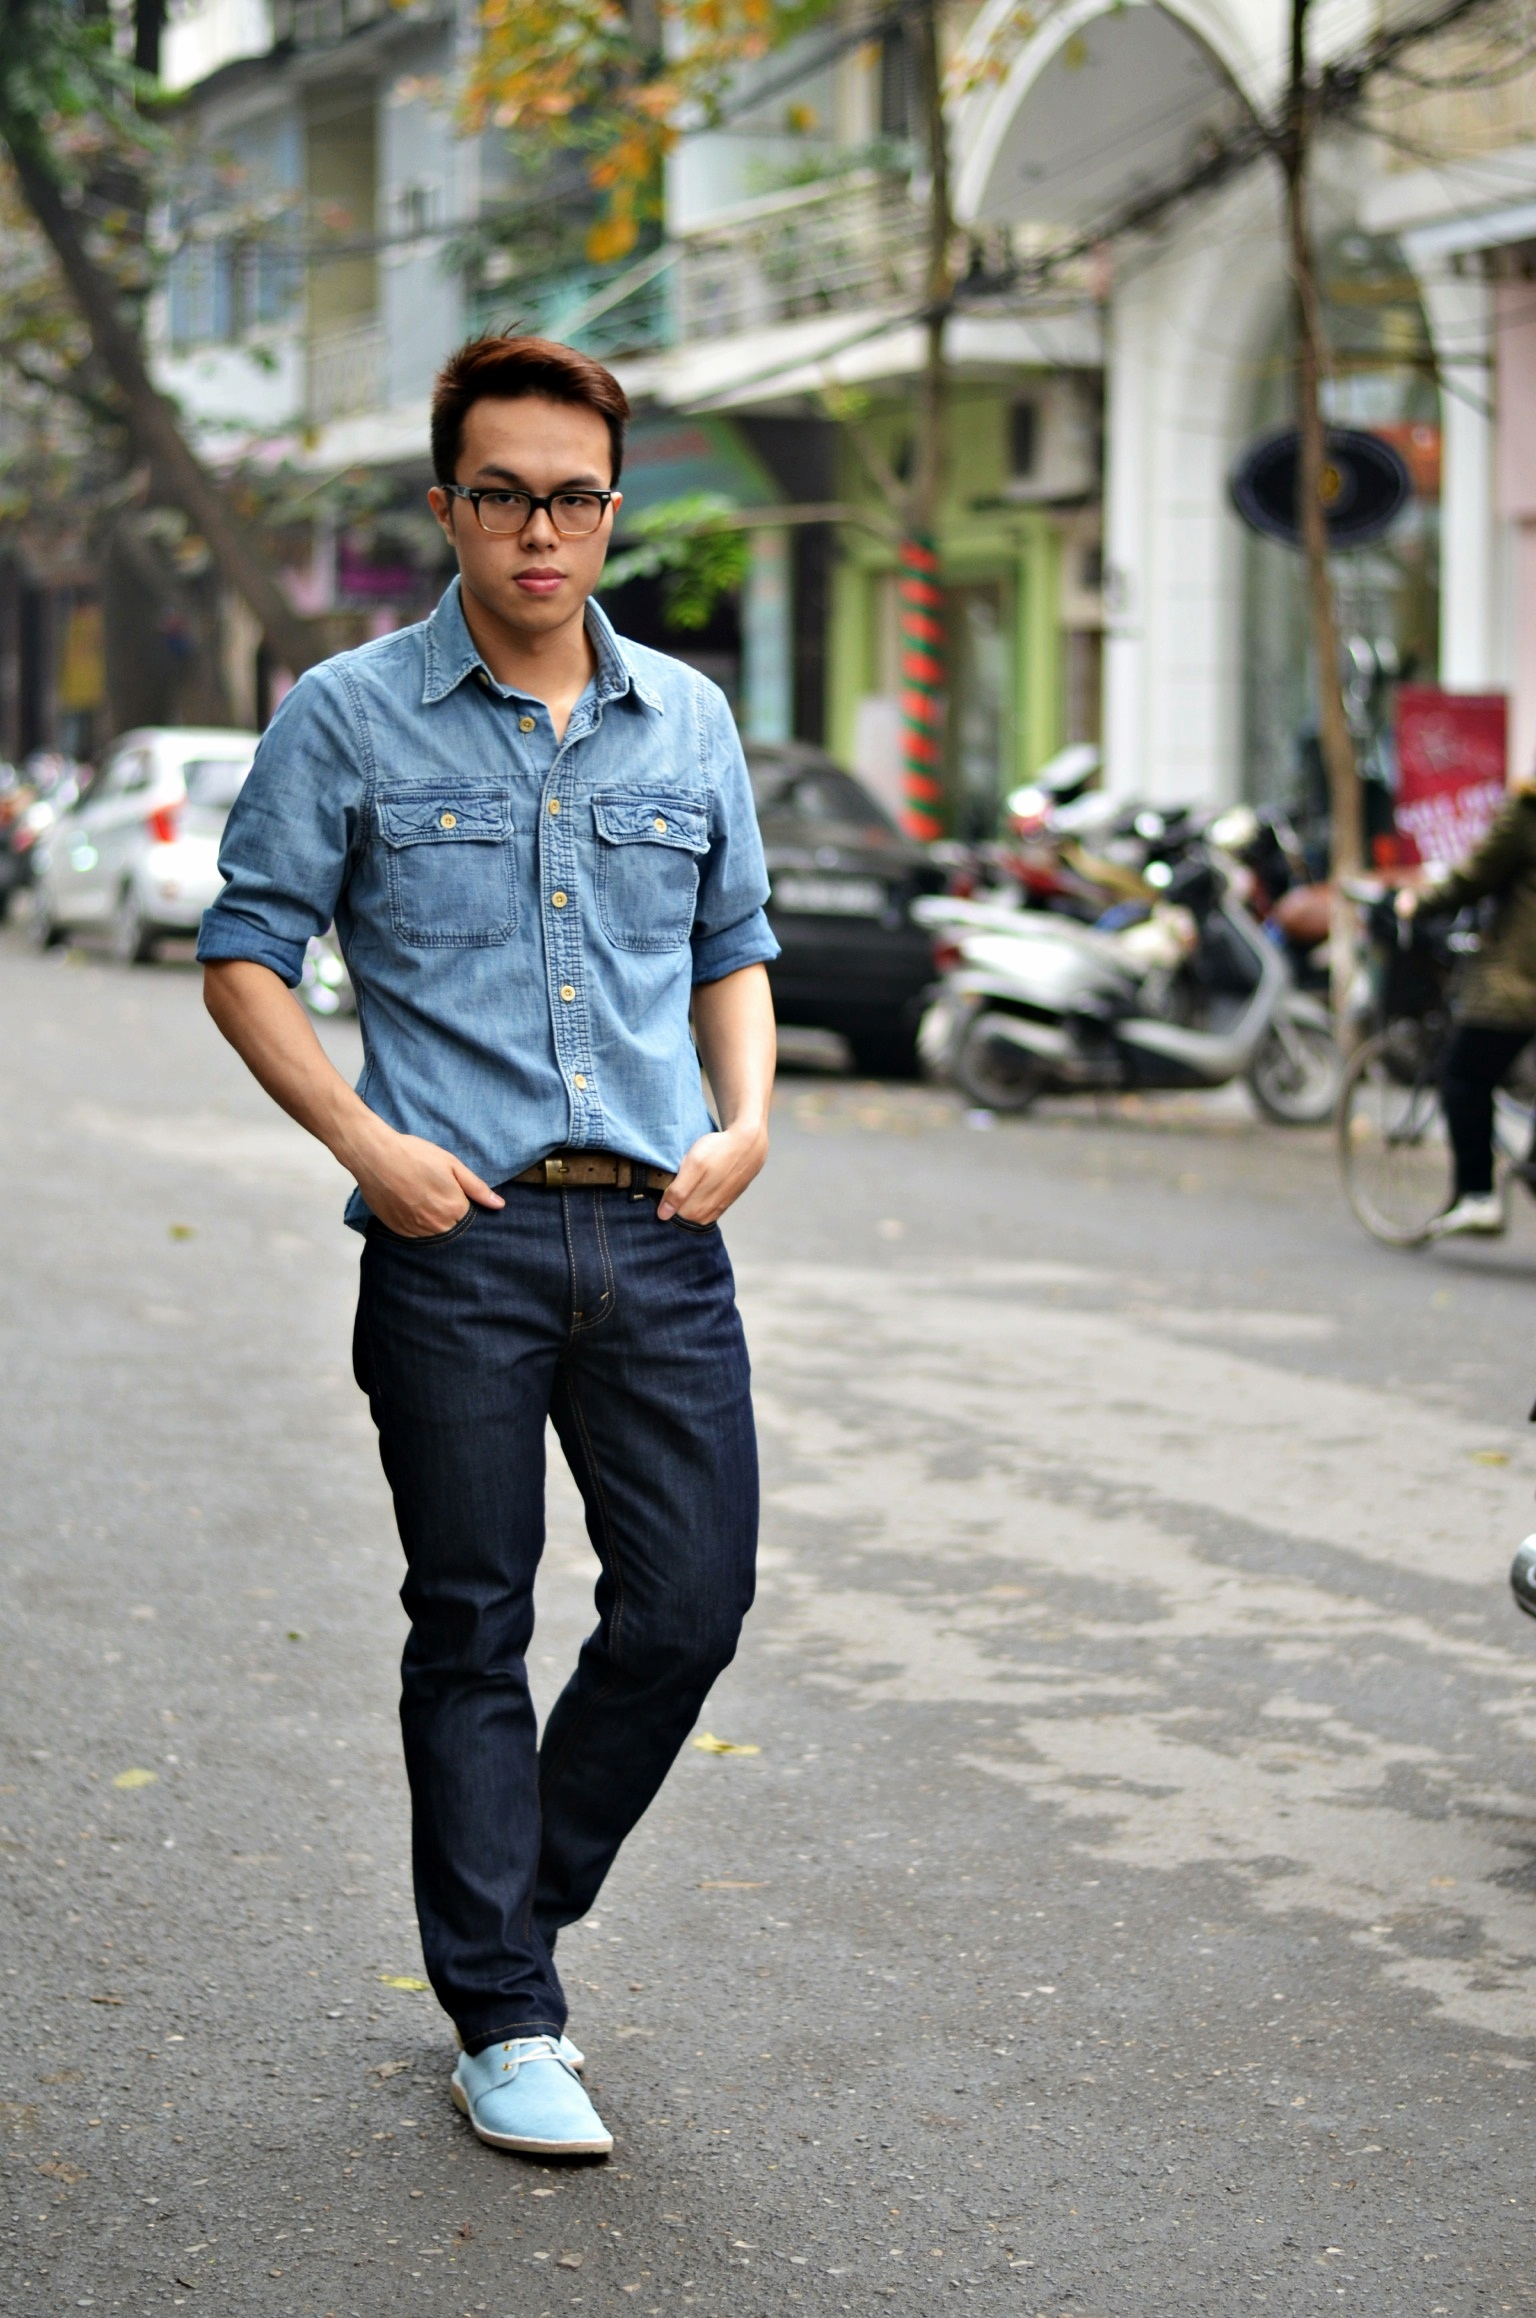 How to wear denim on denim | The Confused Dasher